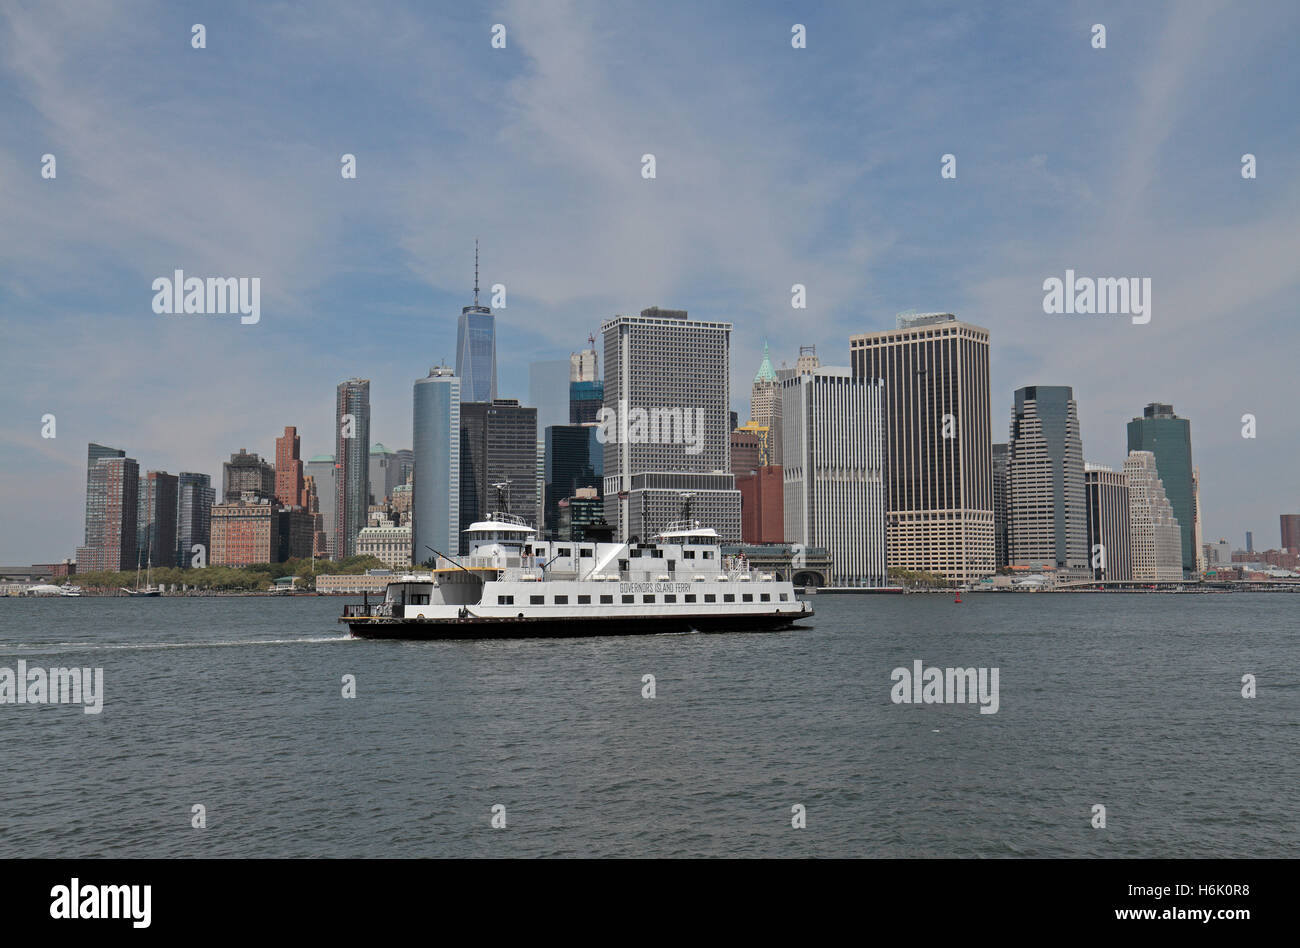 a governors island ferry passing in front of the new york skyline